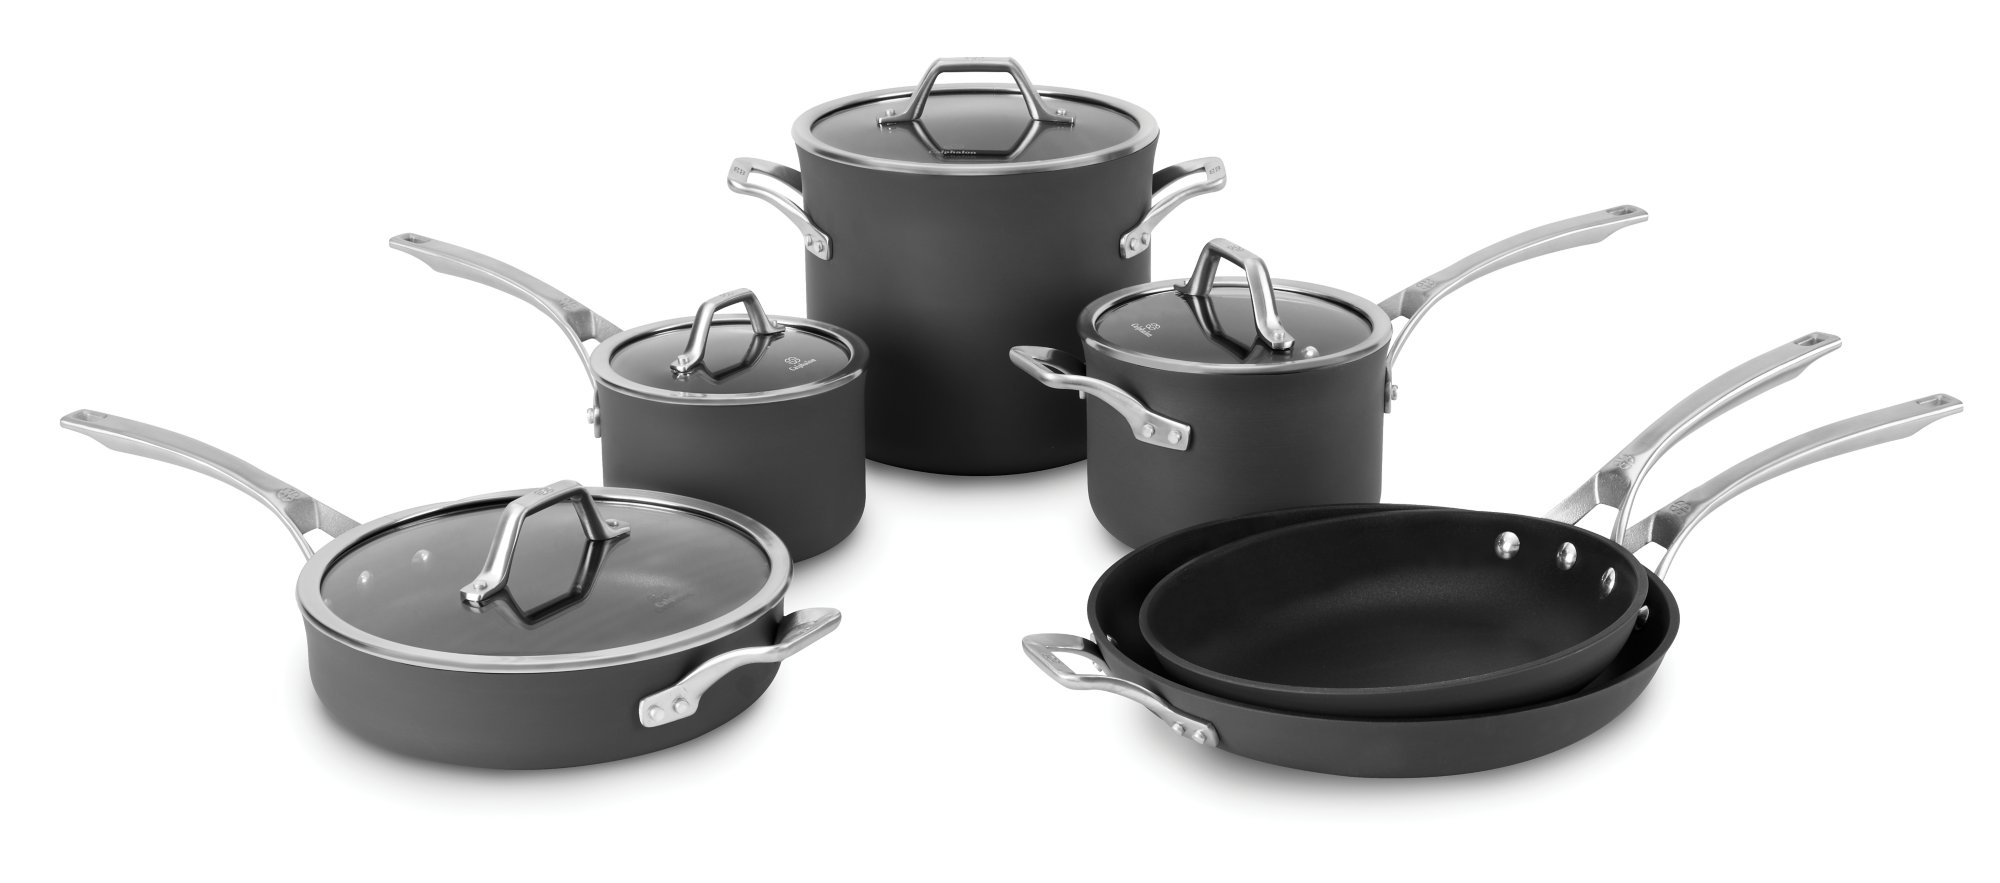 Calphalon Signature™ Nonstick 10-pc. Cookware Set